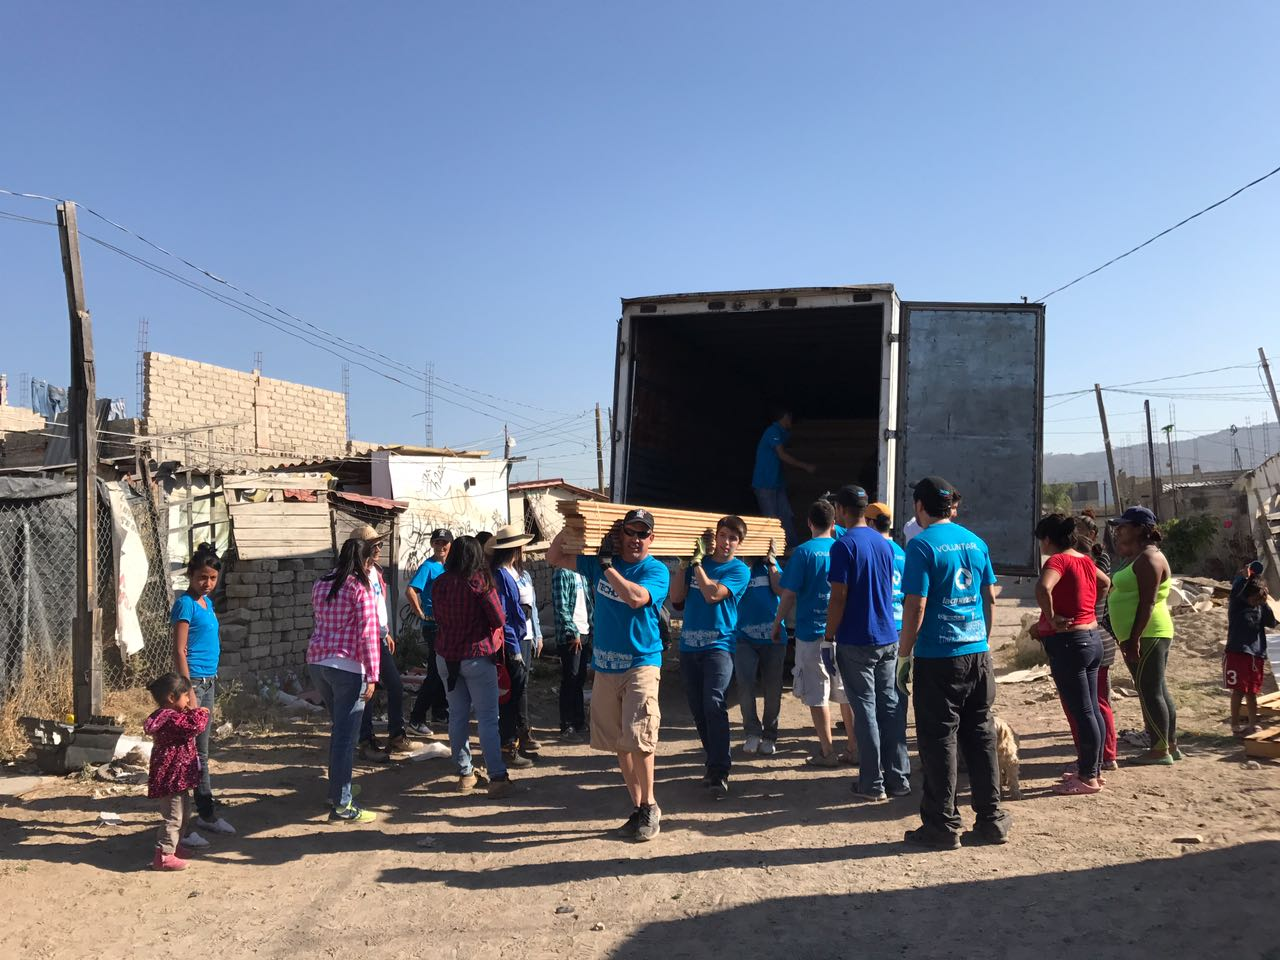 Arpin Strong, helps unload a truck while building homes for the homeless in Guadalajara Mexico.